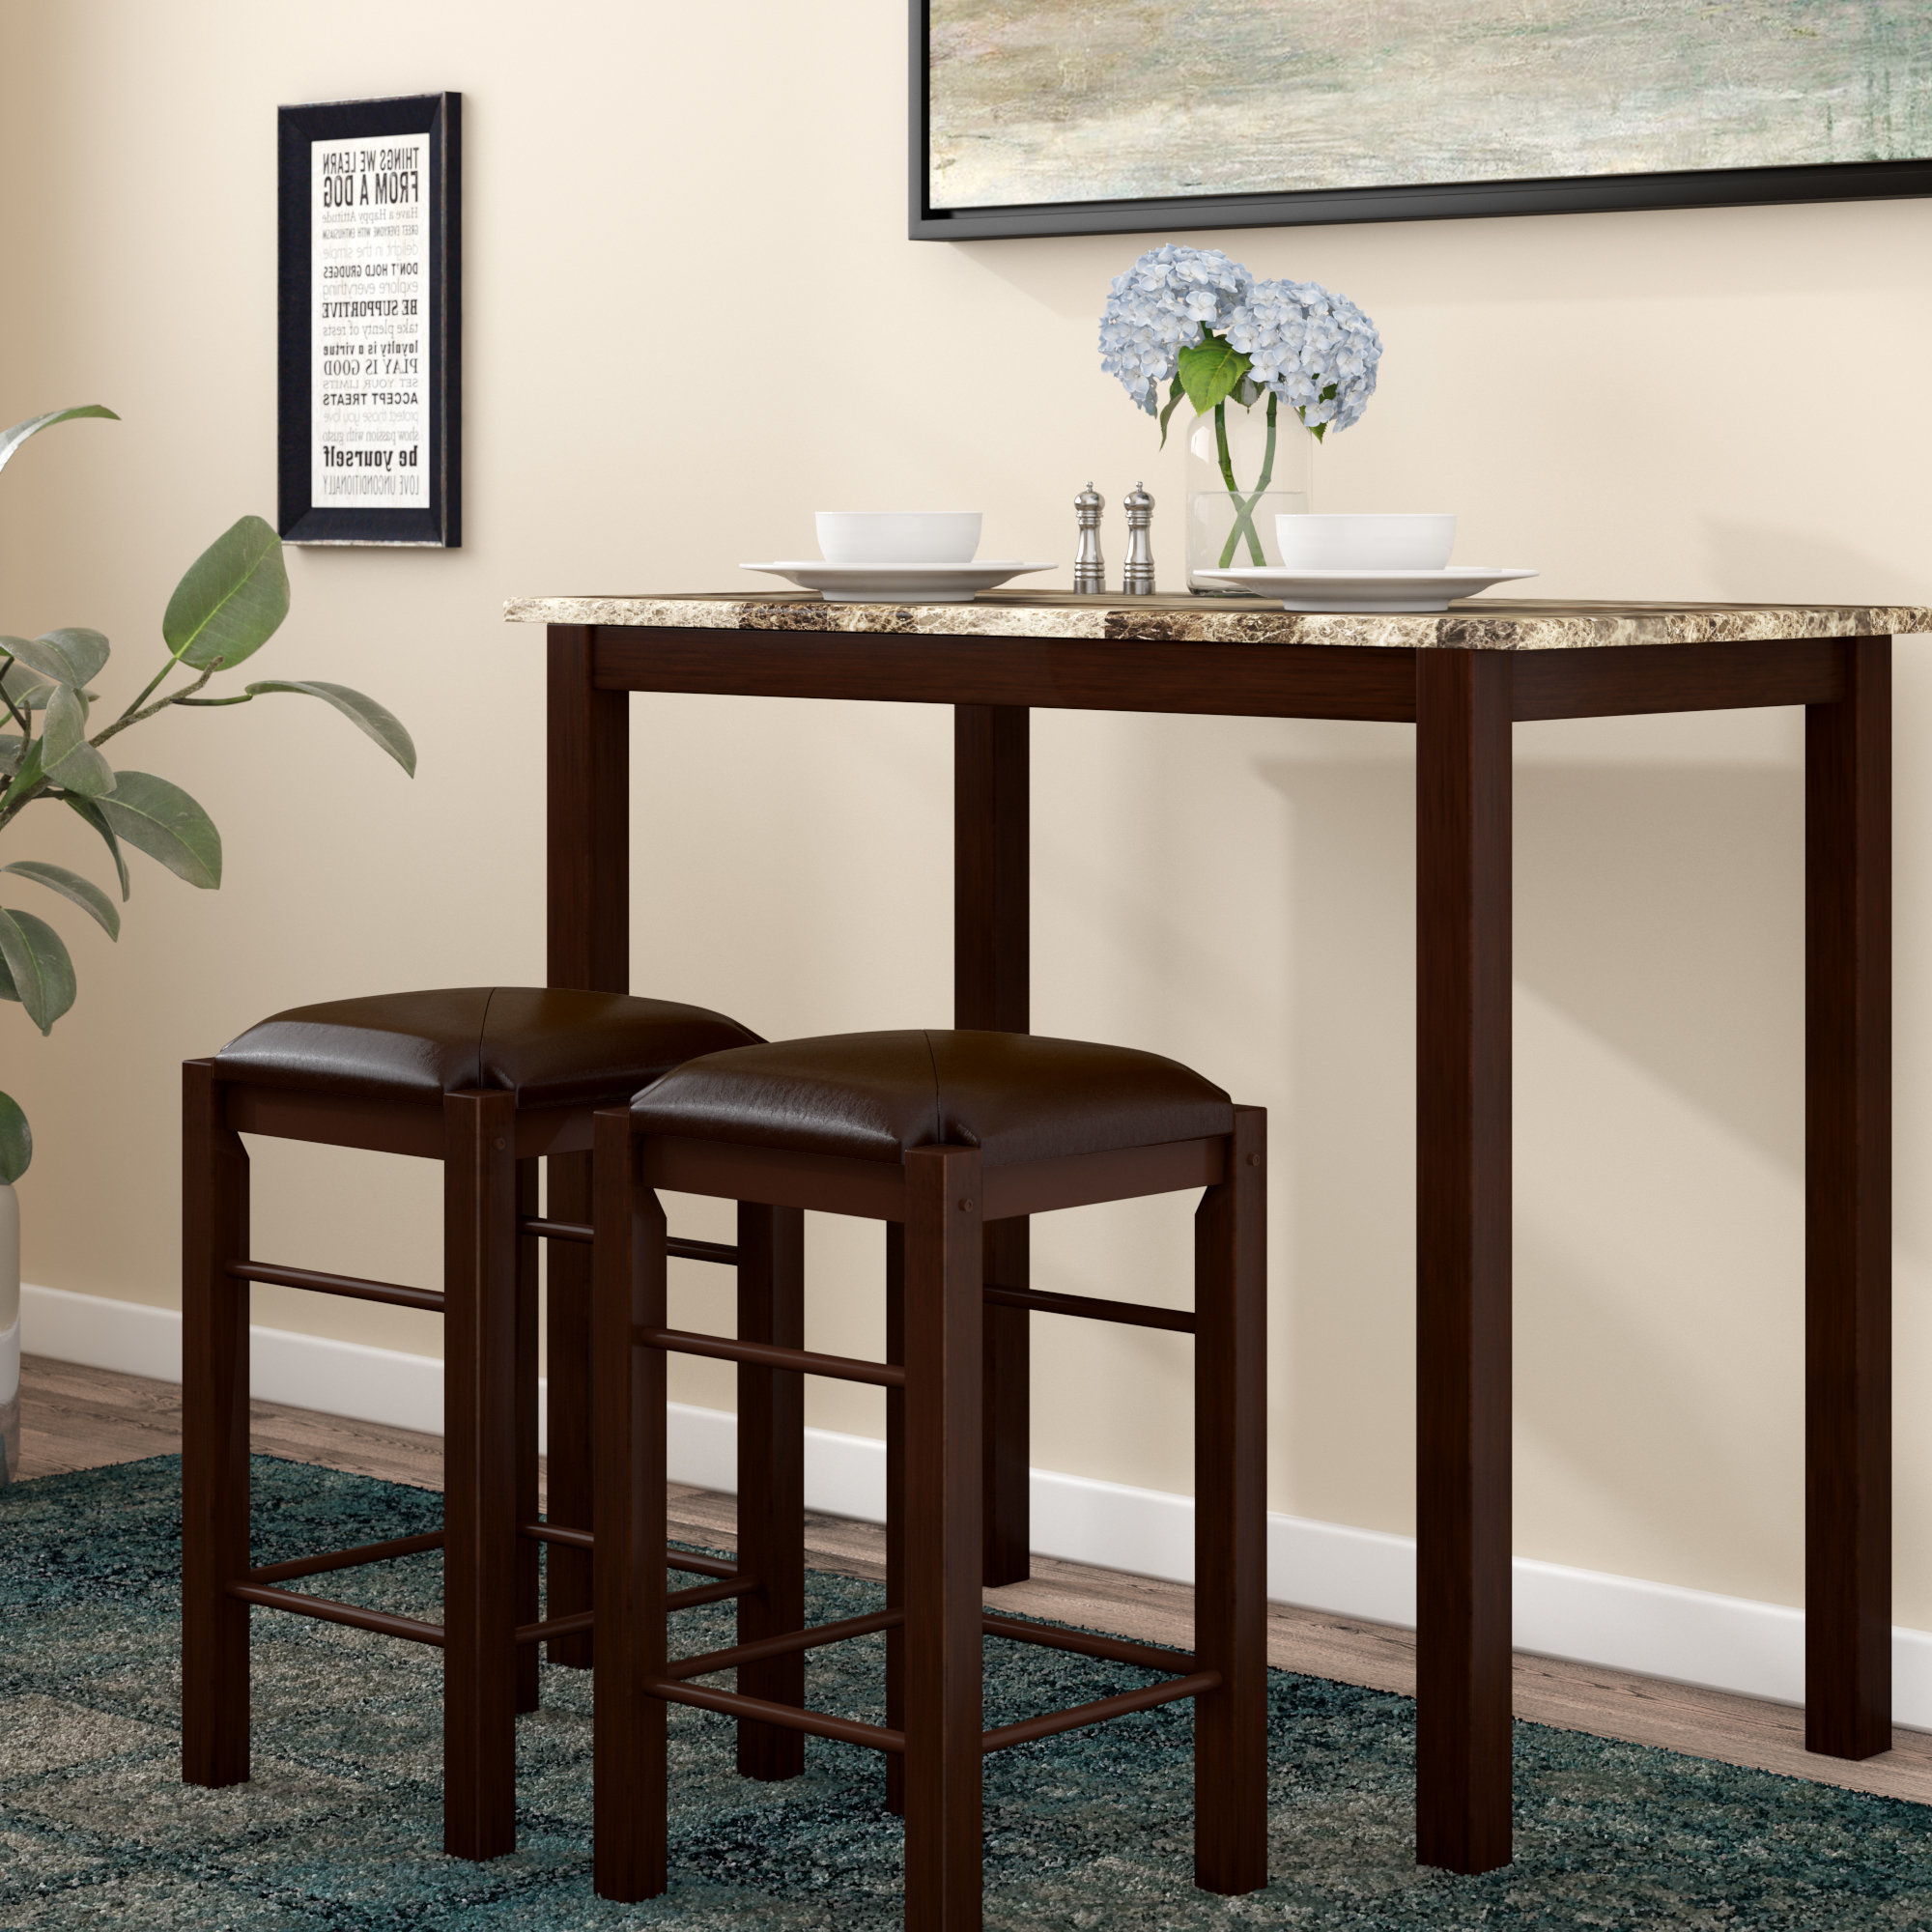 Lillard 3 Piece Breakfast Nook Dining Sets Intended For Popular Penelope 3 Piece Counter Height Wood Dining Set (Gallery 8 of 20)